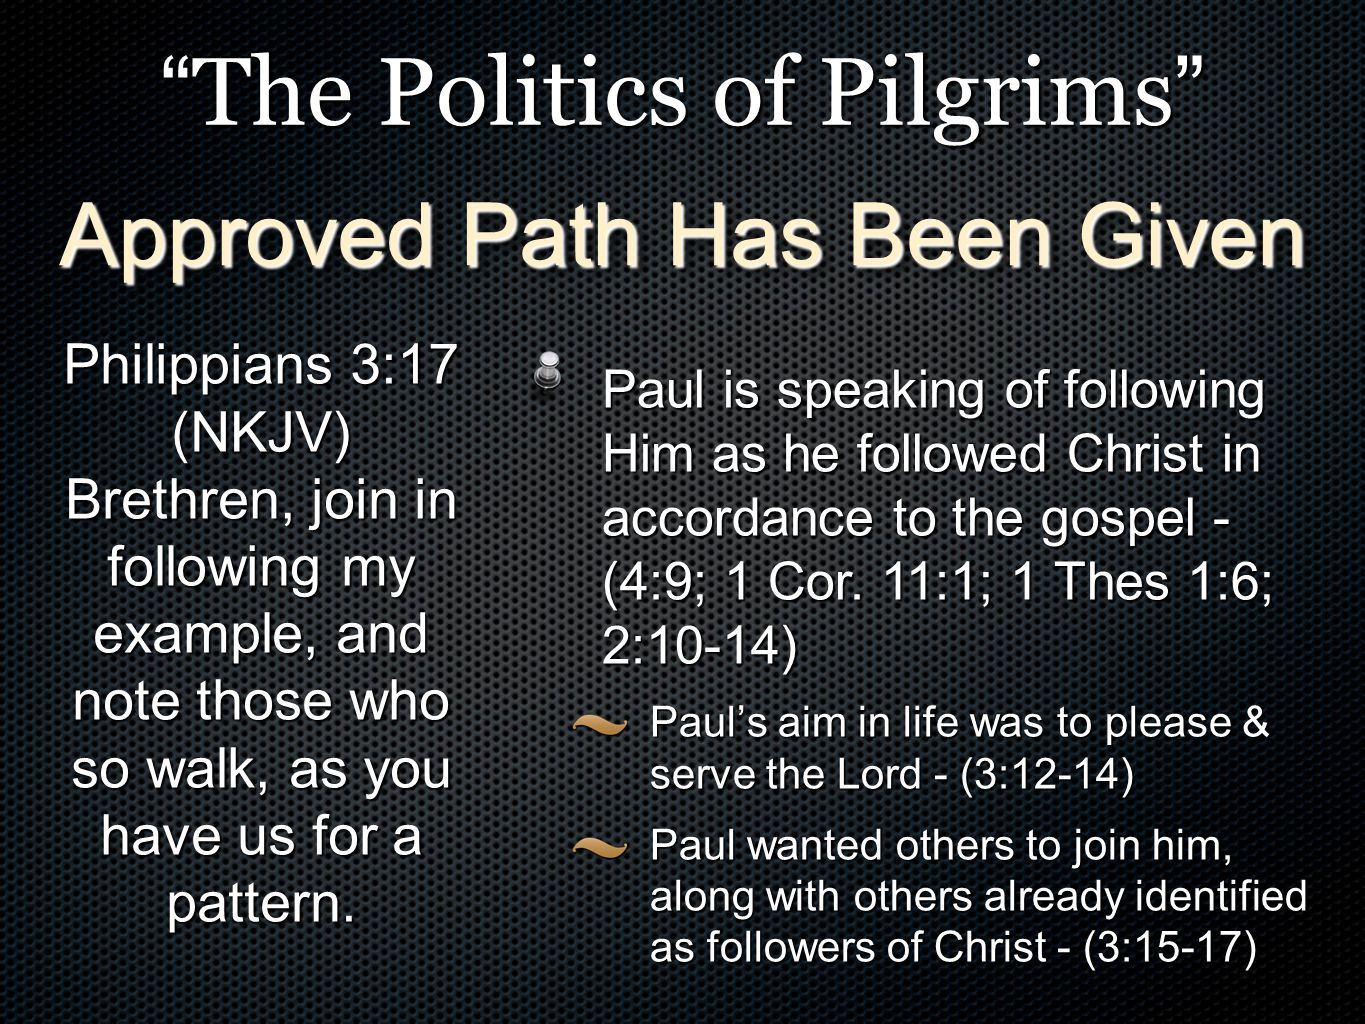 The Politics of Pilgrims Paul is speaking of following Him as he followed Christ in accordance to the gospel - (4:9; 1 Cor.